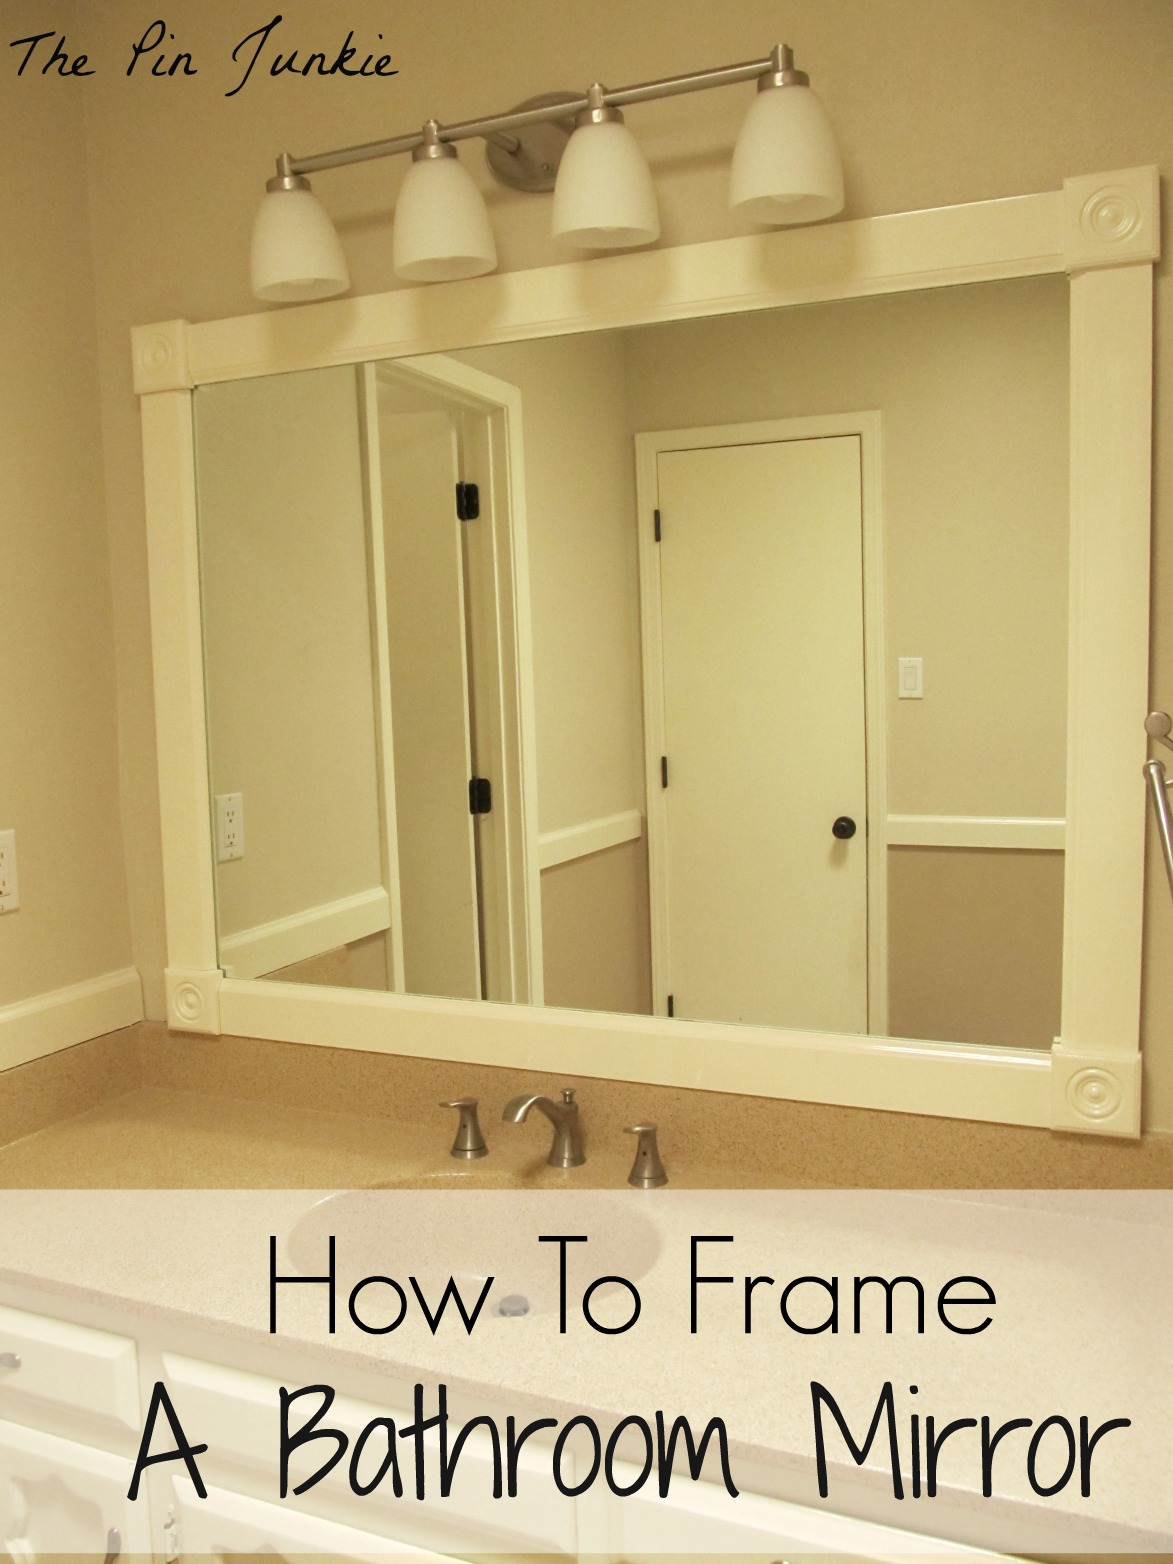 Http Www Thepinjunkie Com 2013 06 How To Frame Bathroom Mirror Html